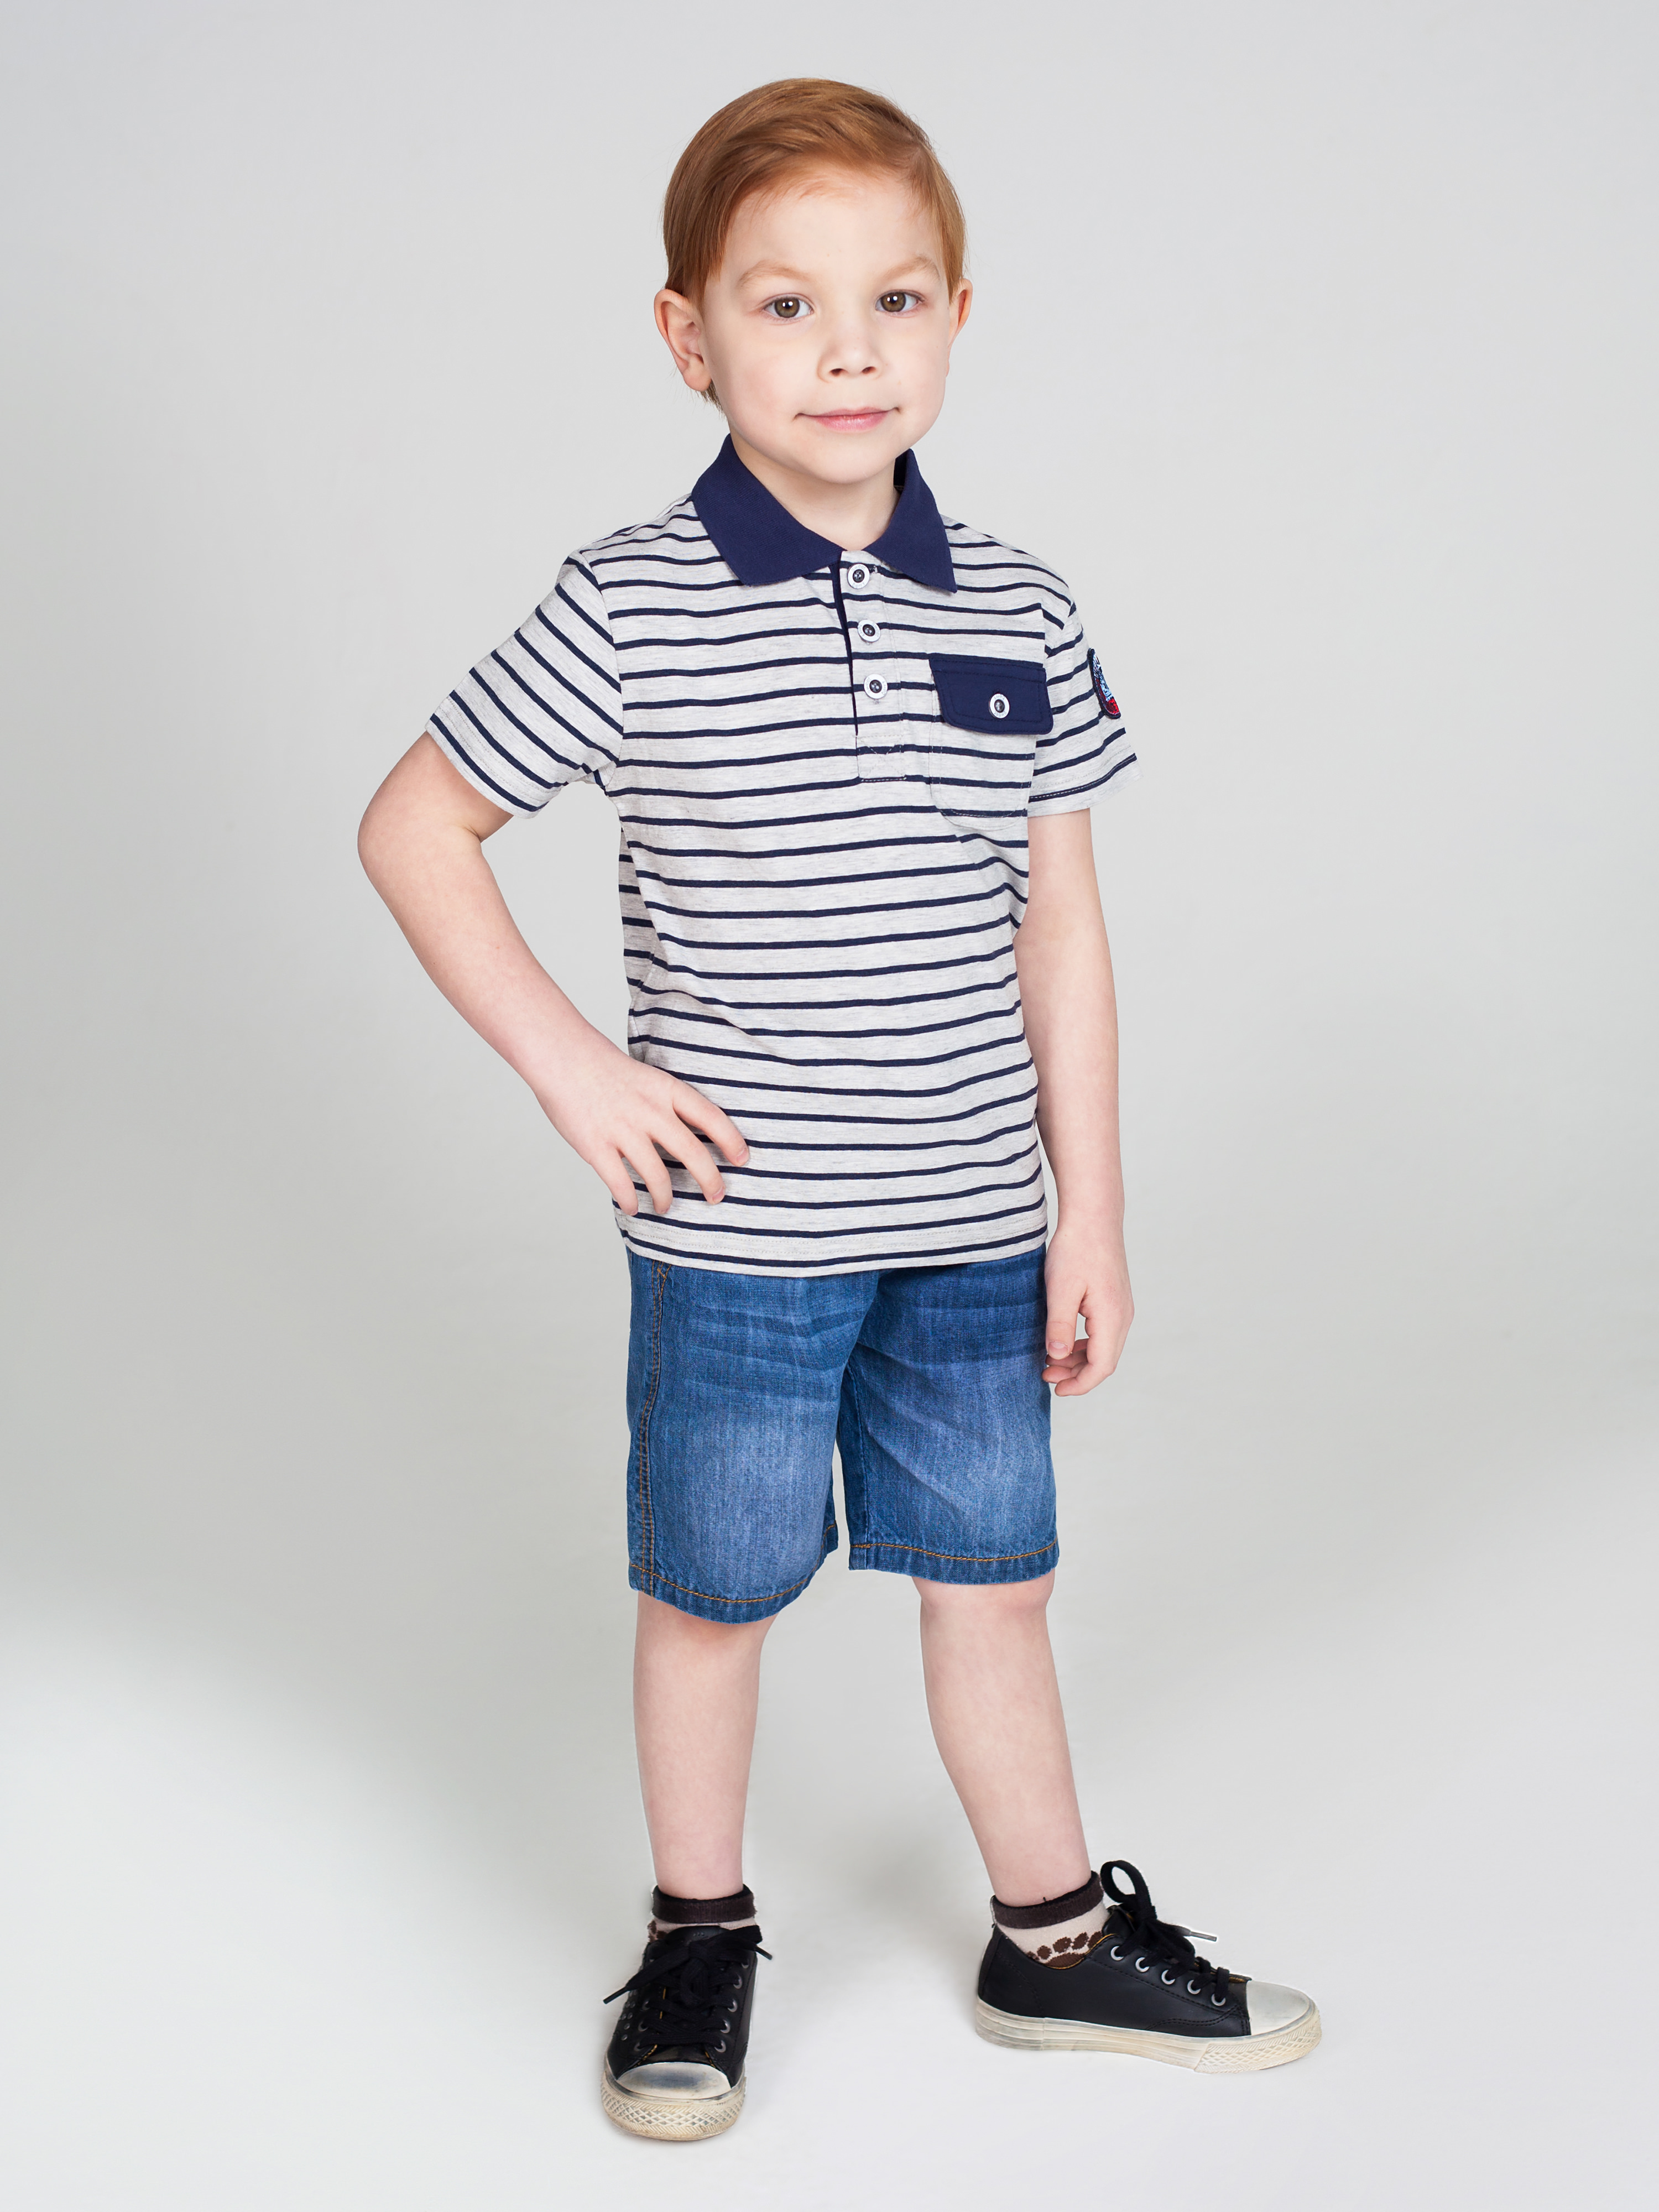 Denim shorts for boys kids self tie dual pocket denim shorts